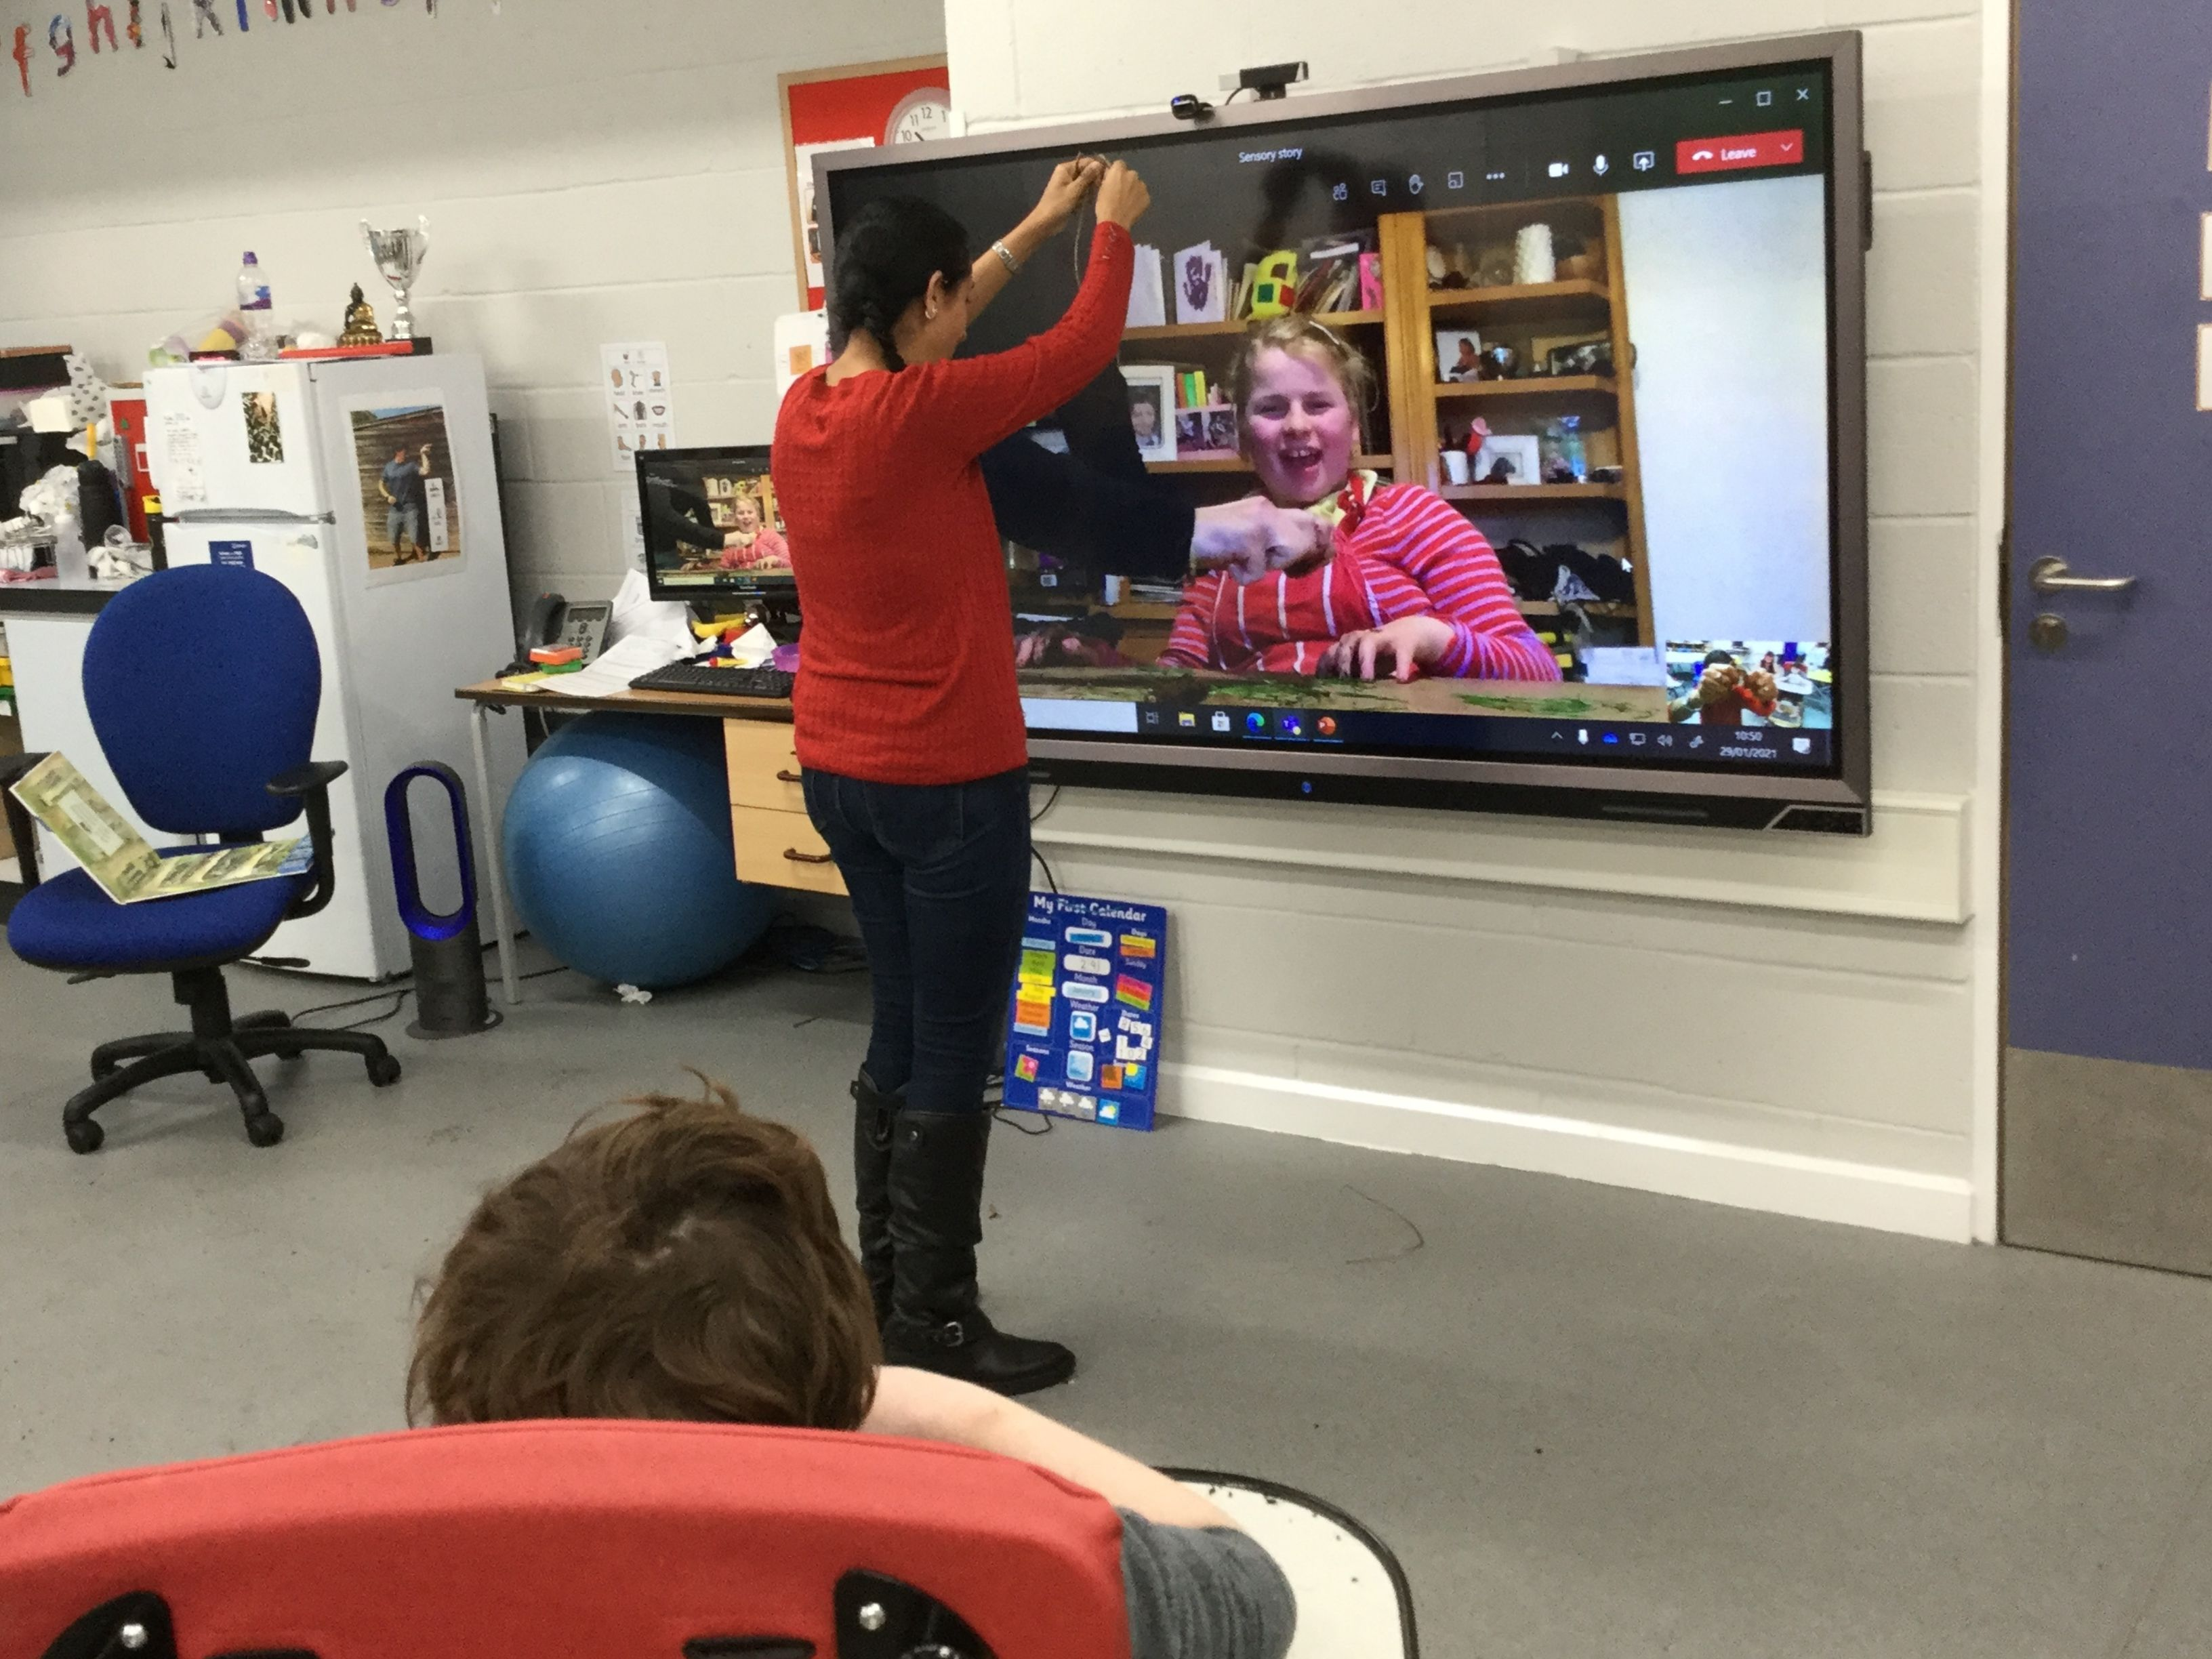 Class lesson with student on screen - a girl in pink top and boy in class in a wheelchair